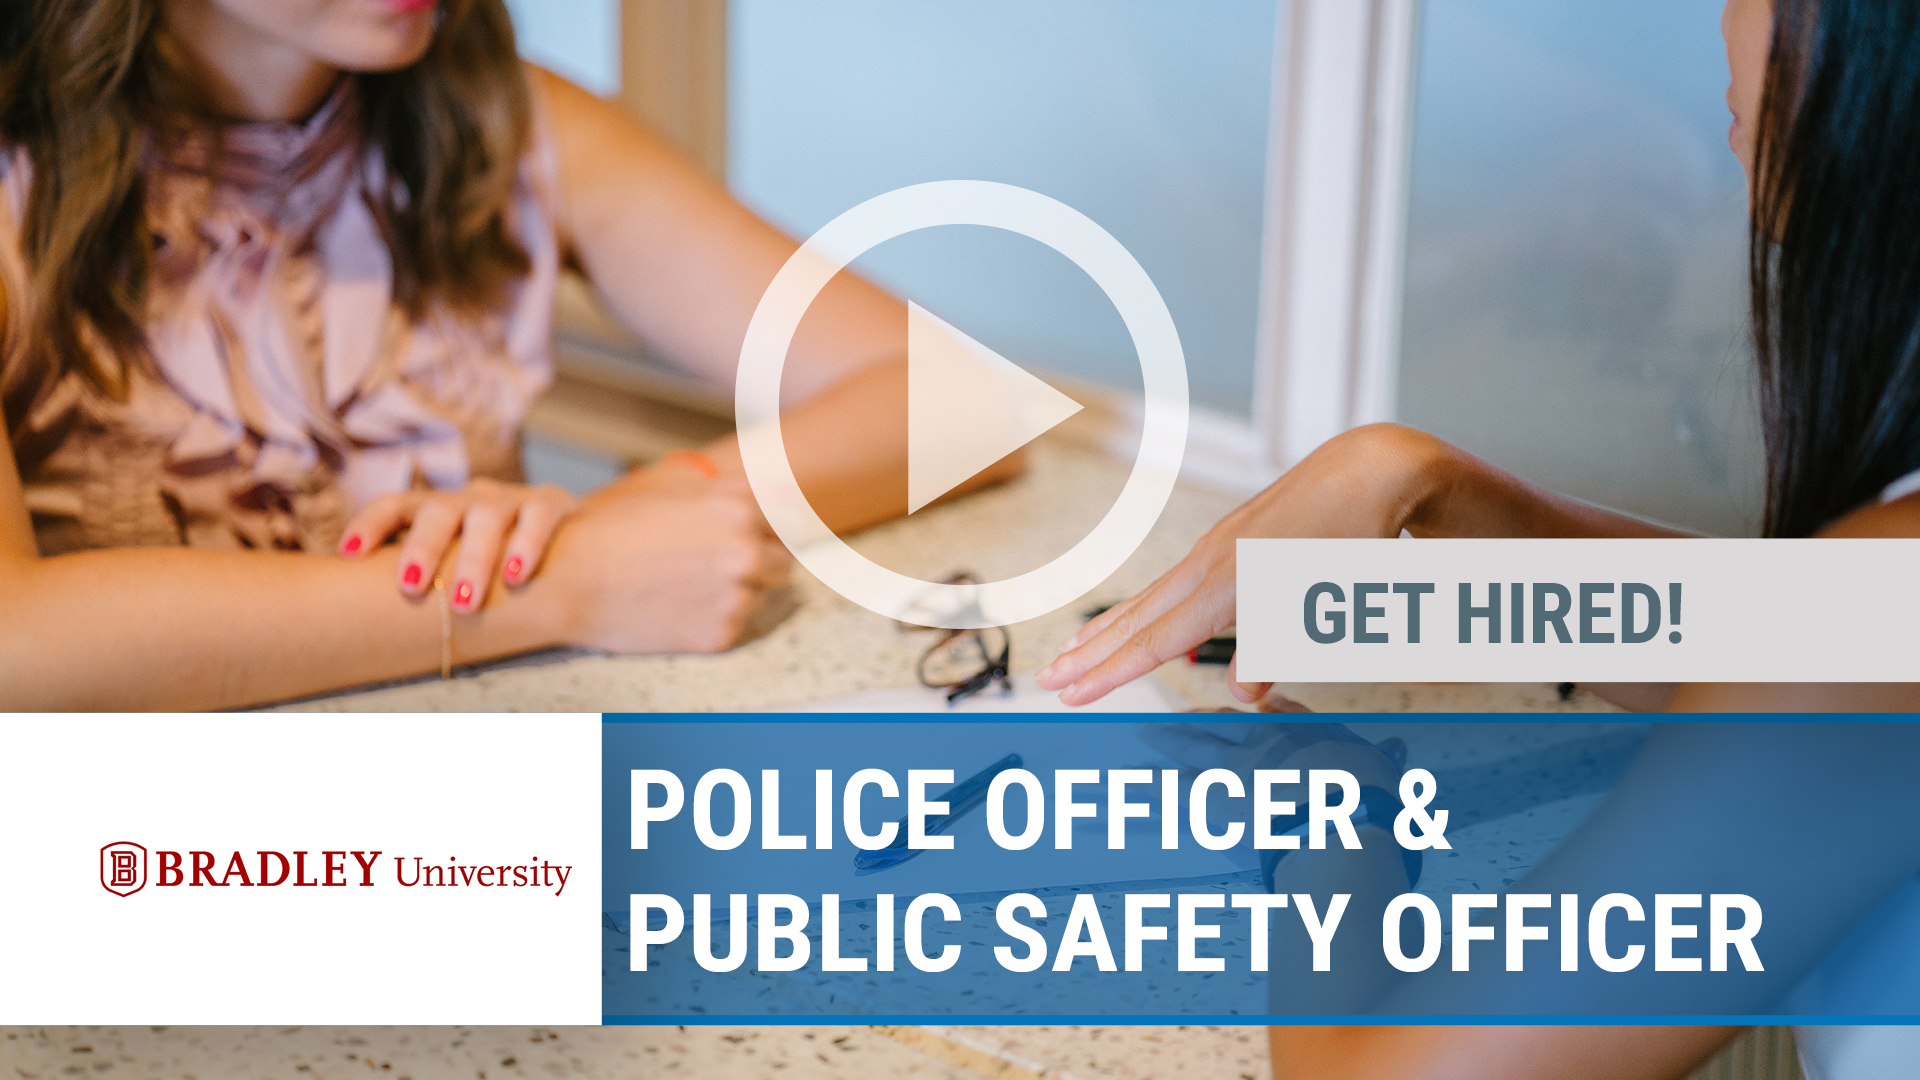 Watch our careers video for available job opening POLICE OFFICER & PUBLIC SAFETY OFFICER in Peoria, IL